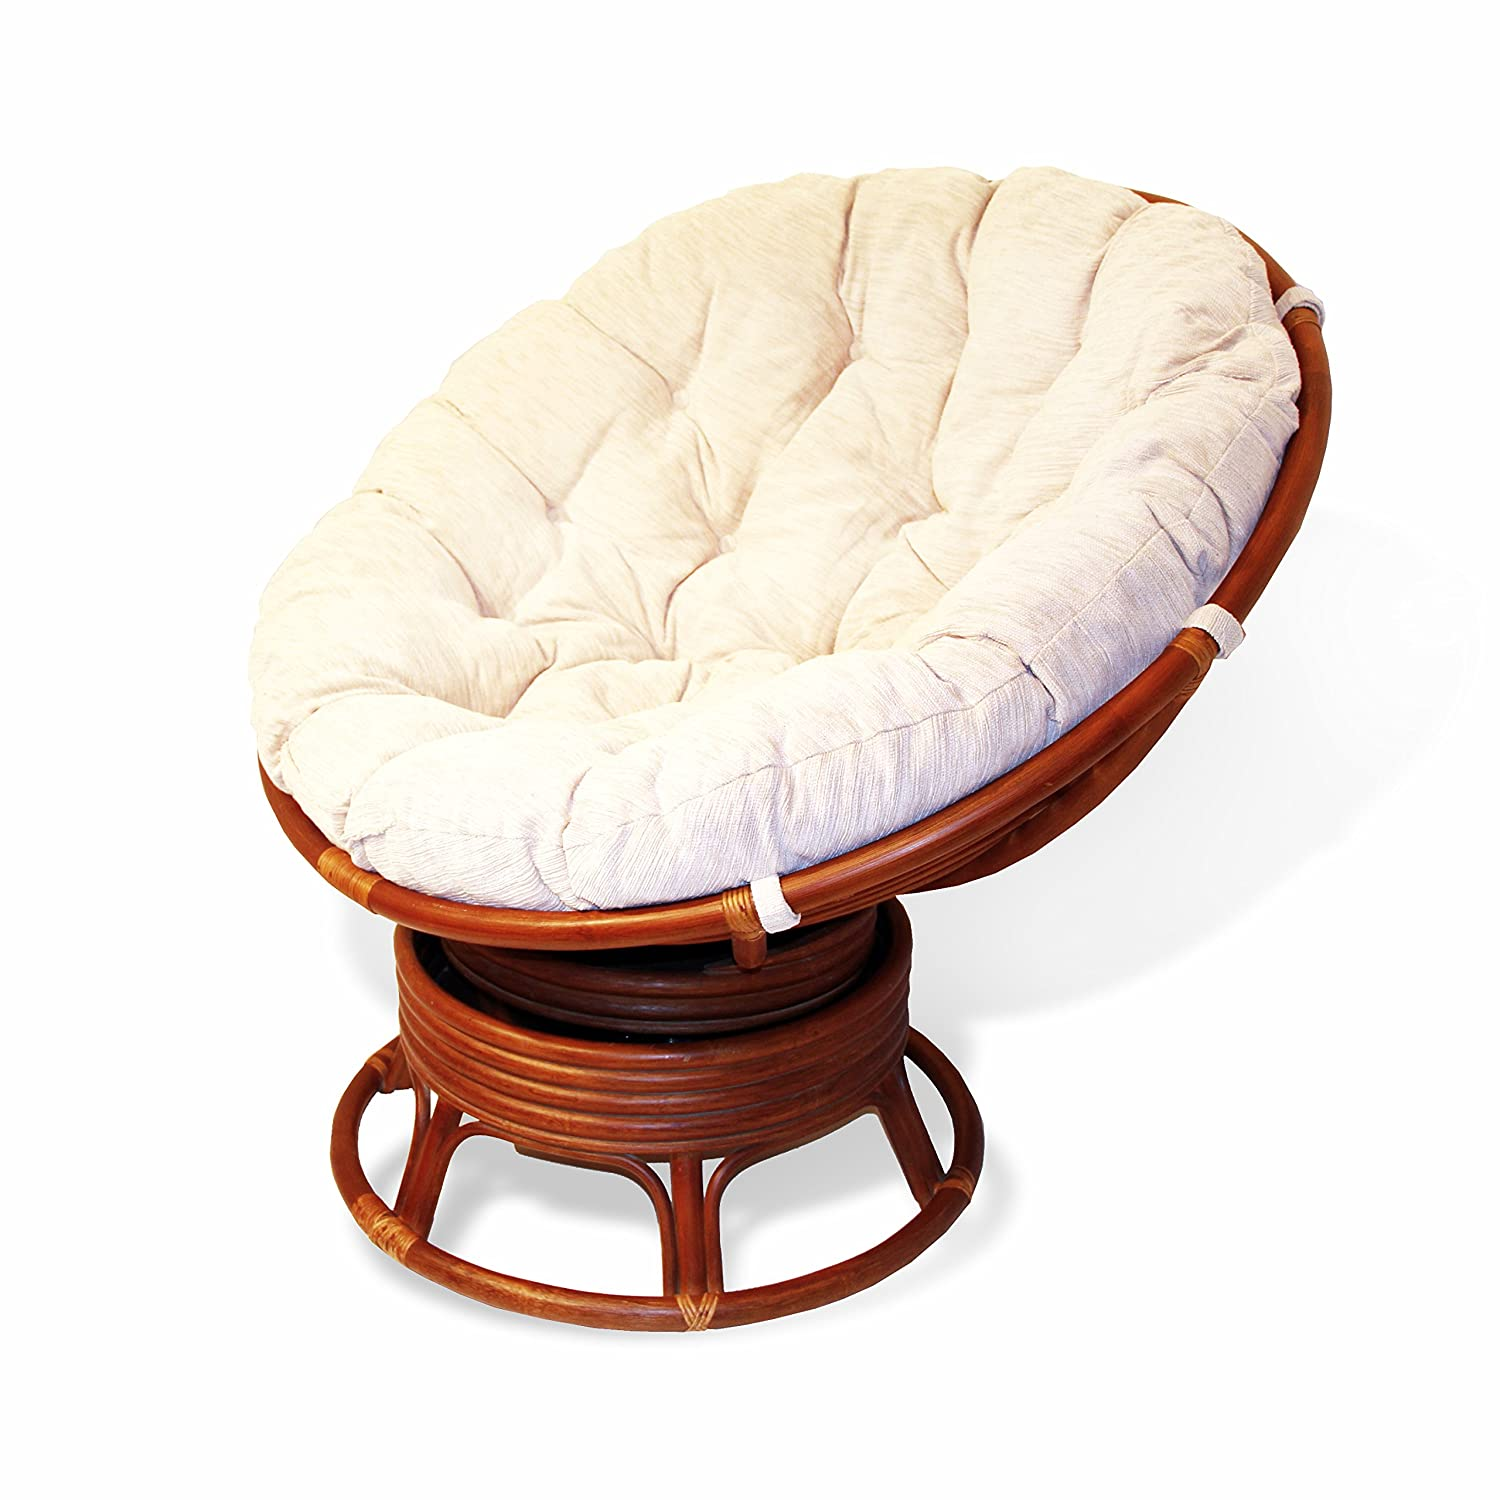 Peachy Rattan Wicker Swivel Rocking Round Papasan Chair With Cushion Colonial Light Brown Pabps2019 Chair Design Images Pabps2019Com